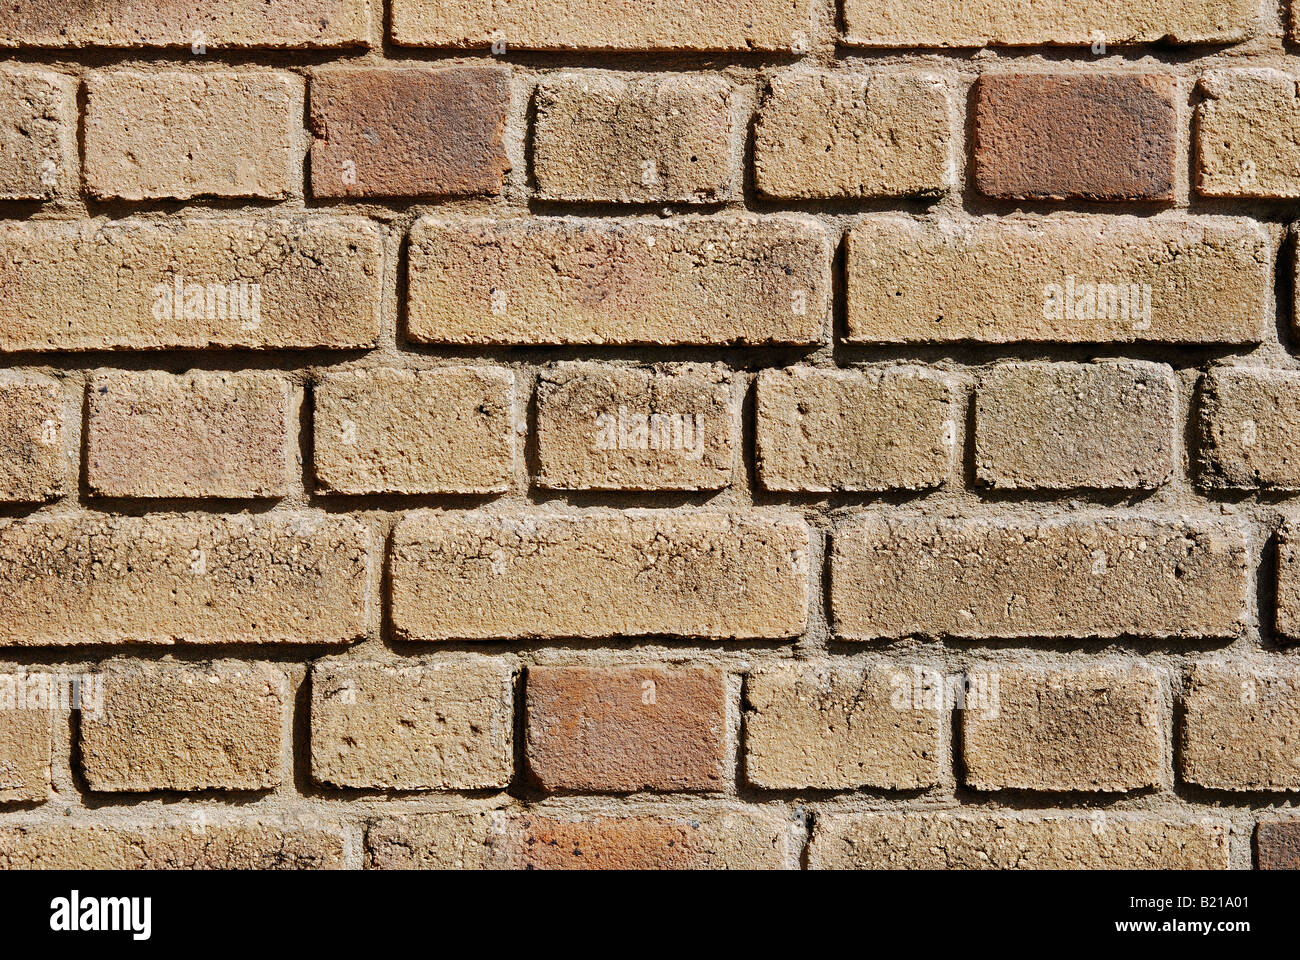 a brickwall background - Stock Image